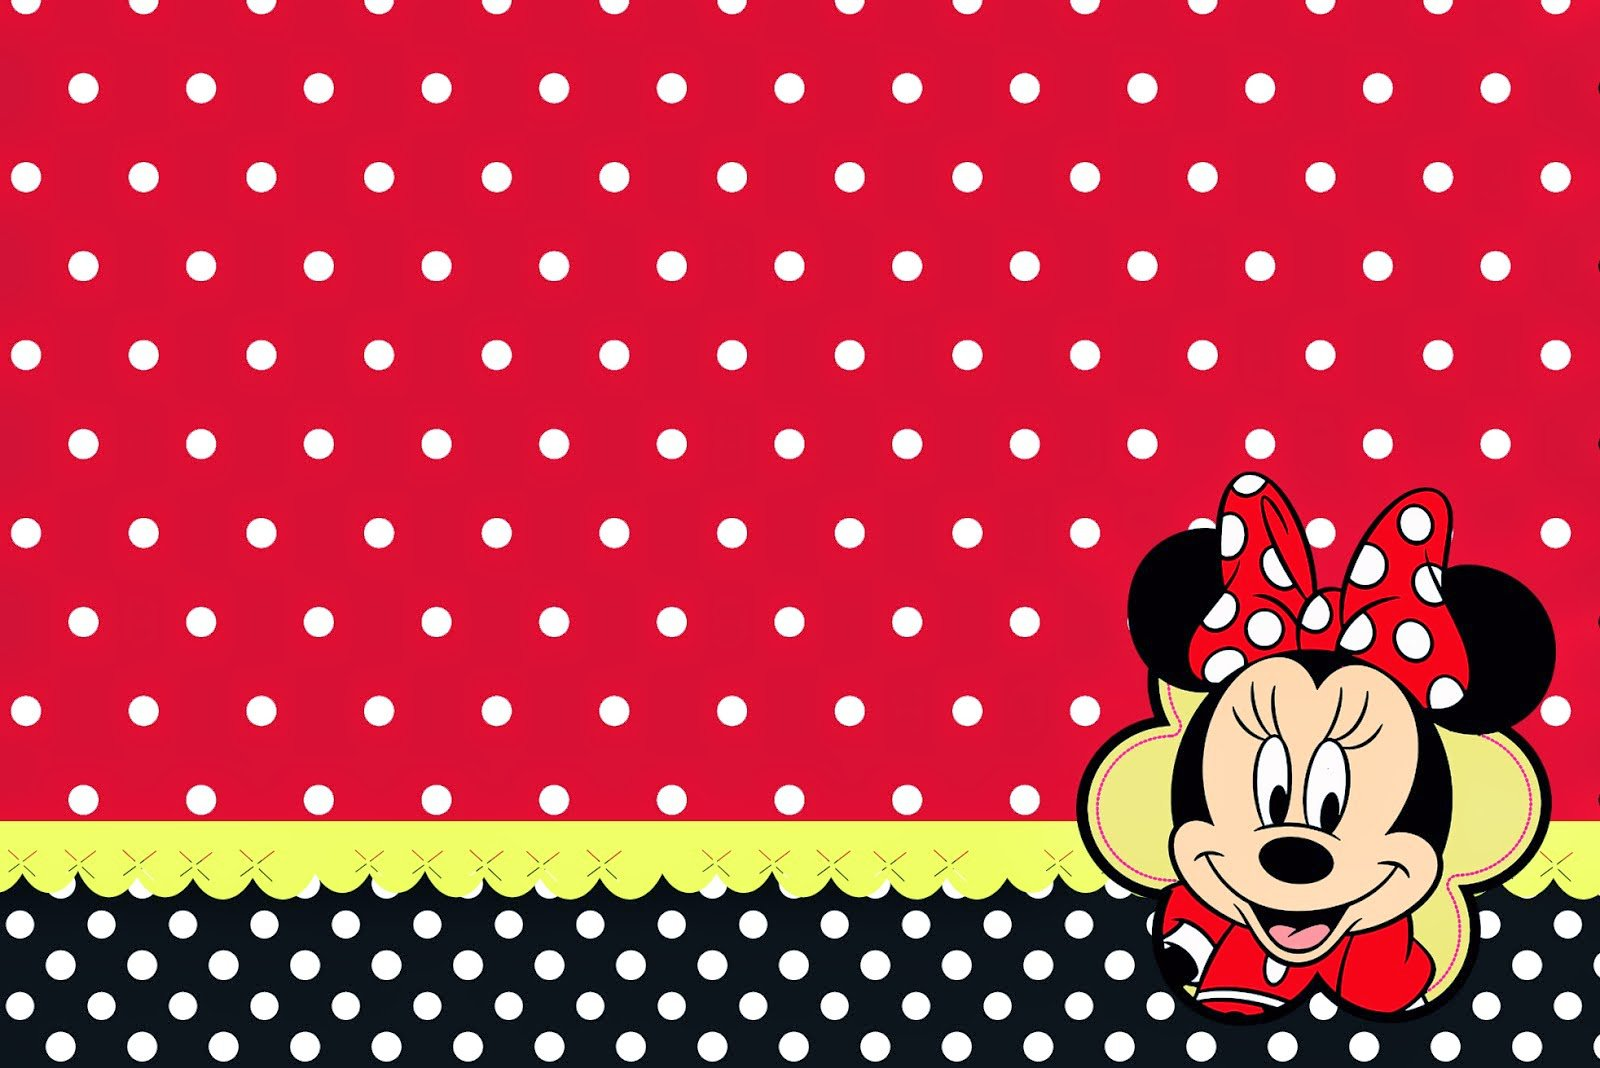 Minnie Mouse Invitation Backgrounds